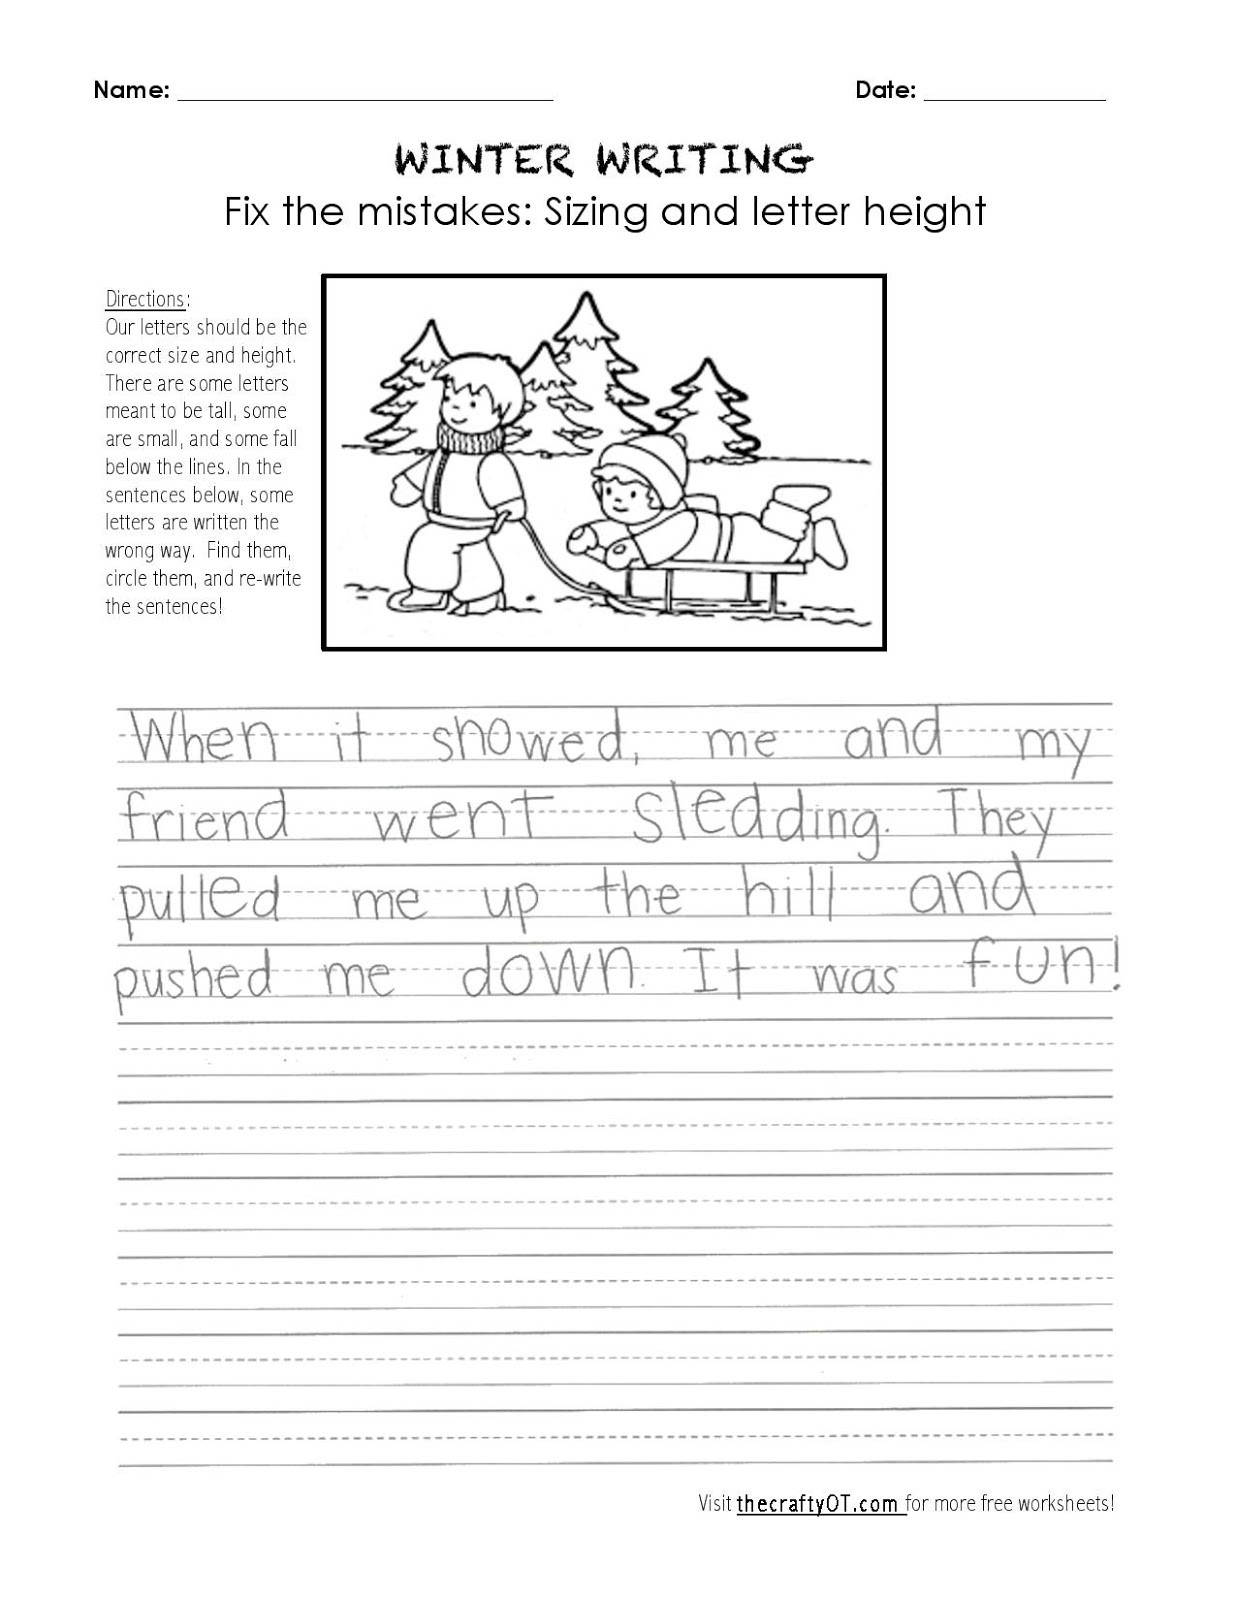 Occupational therapy Handwriting Worksheets the Crafty Ot January 2019